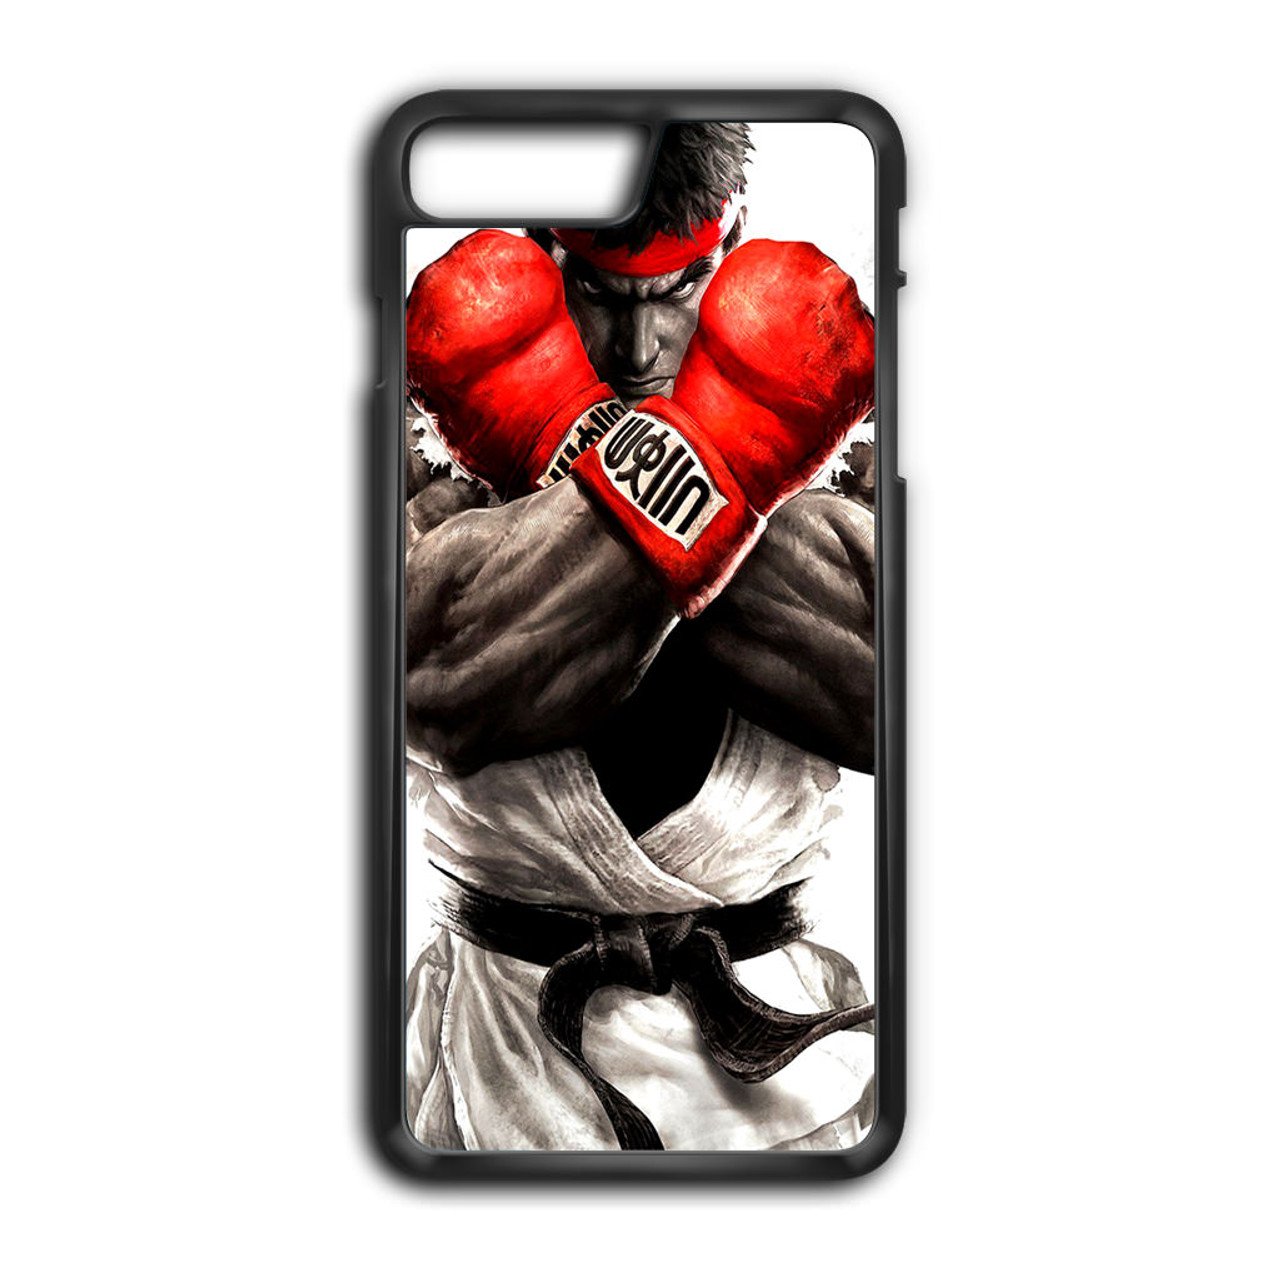 boxing iphone 7 case